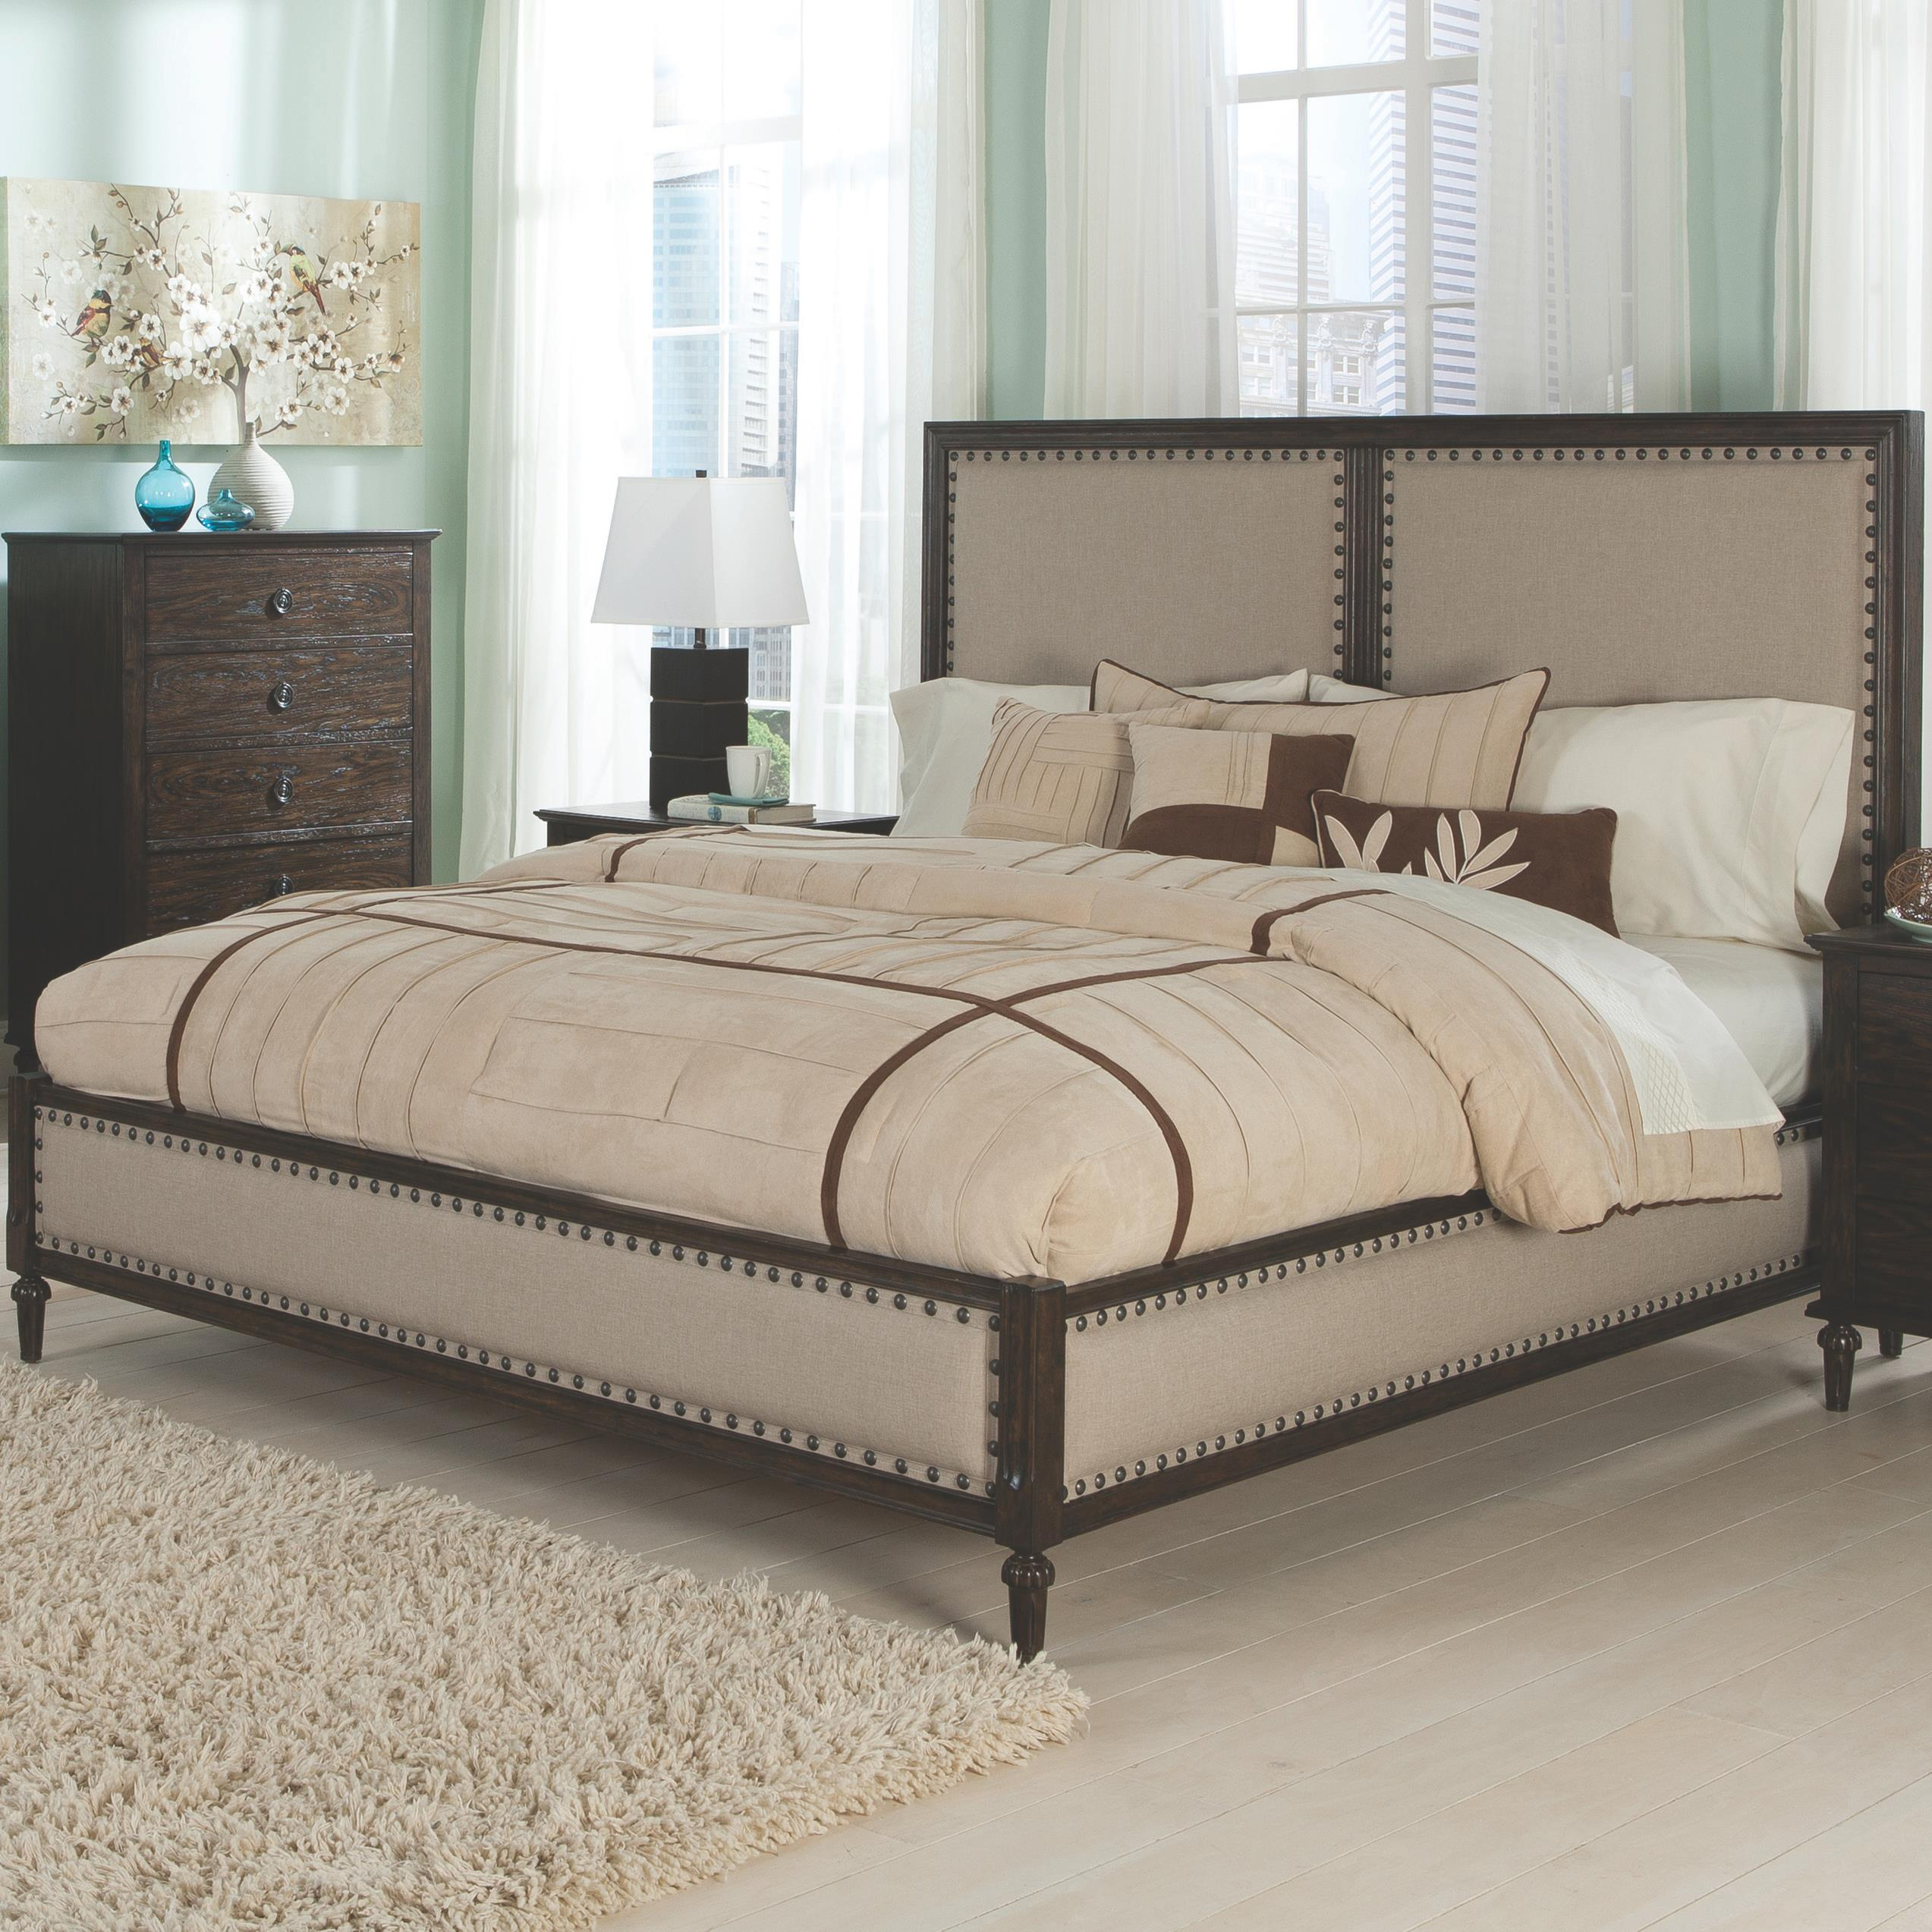 Coaster Saville Cal King Bed - Item Number: 203931KW